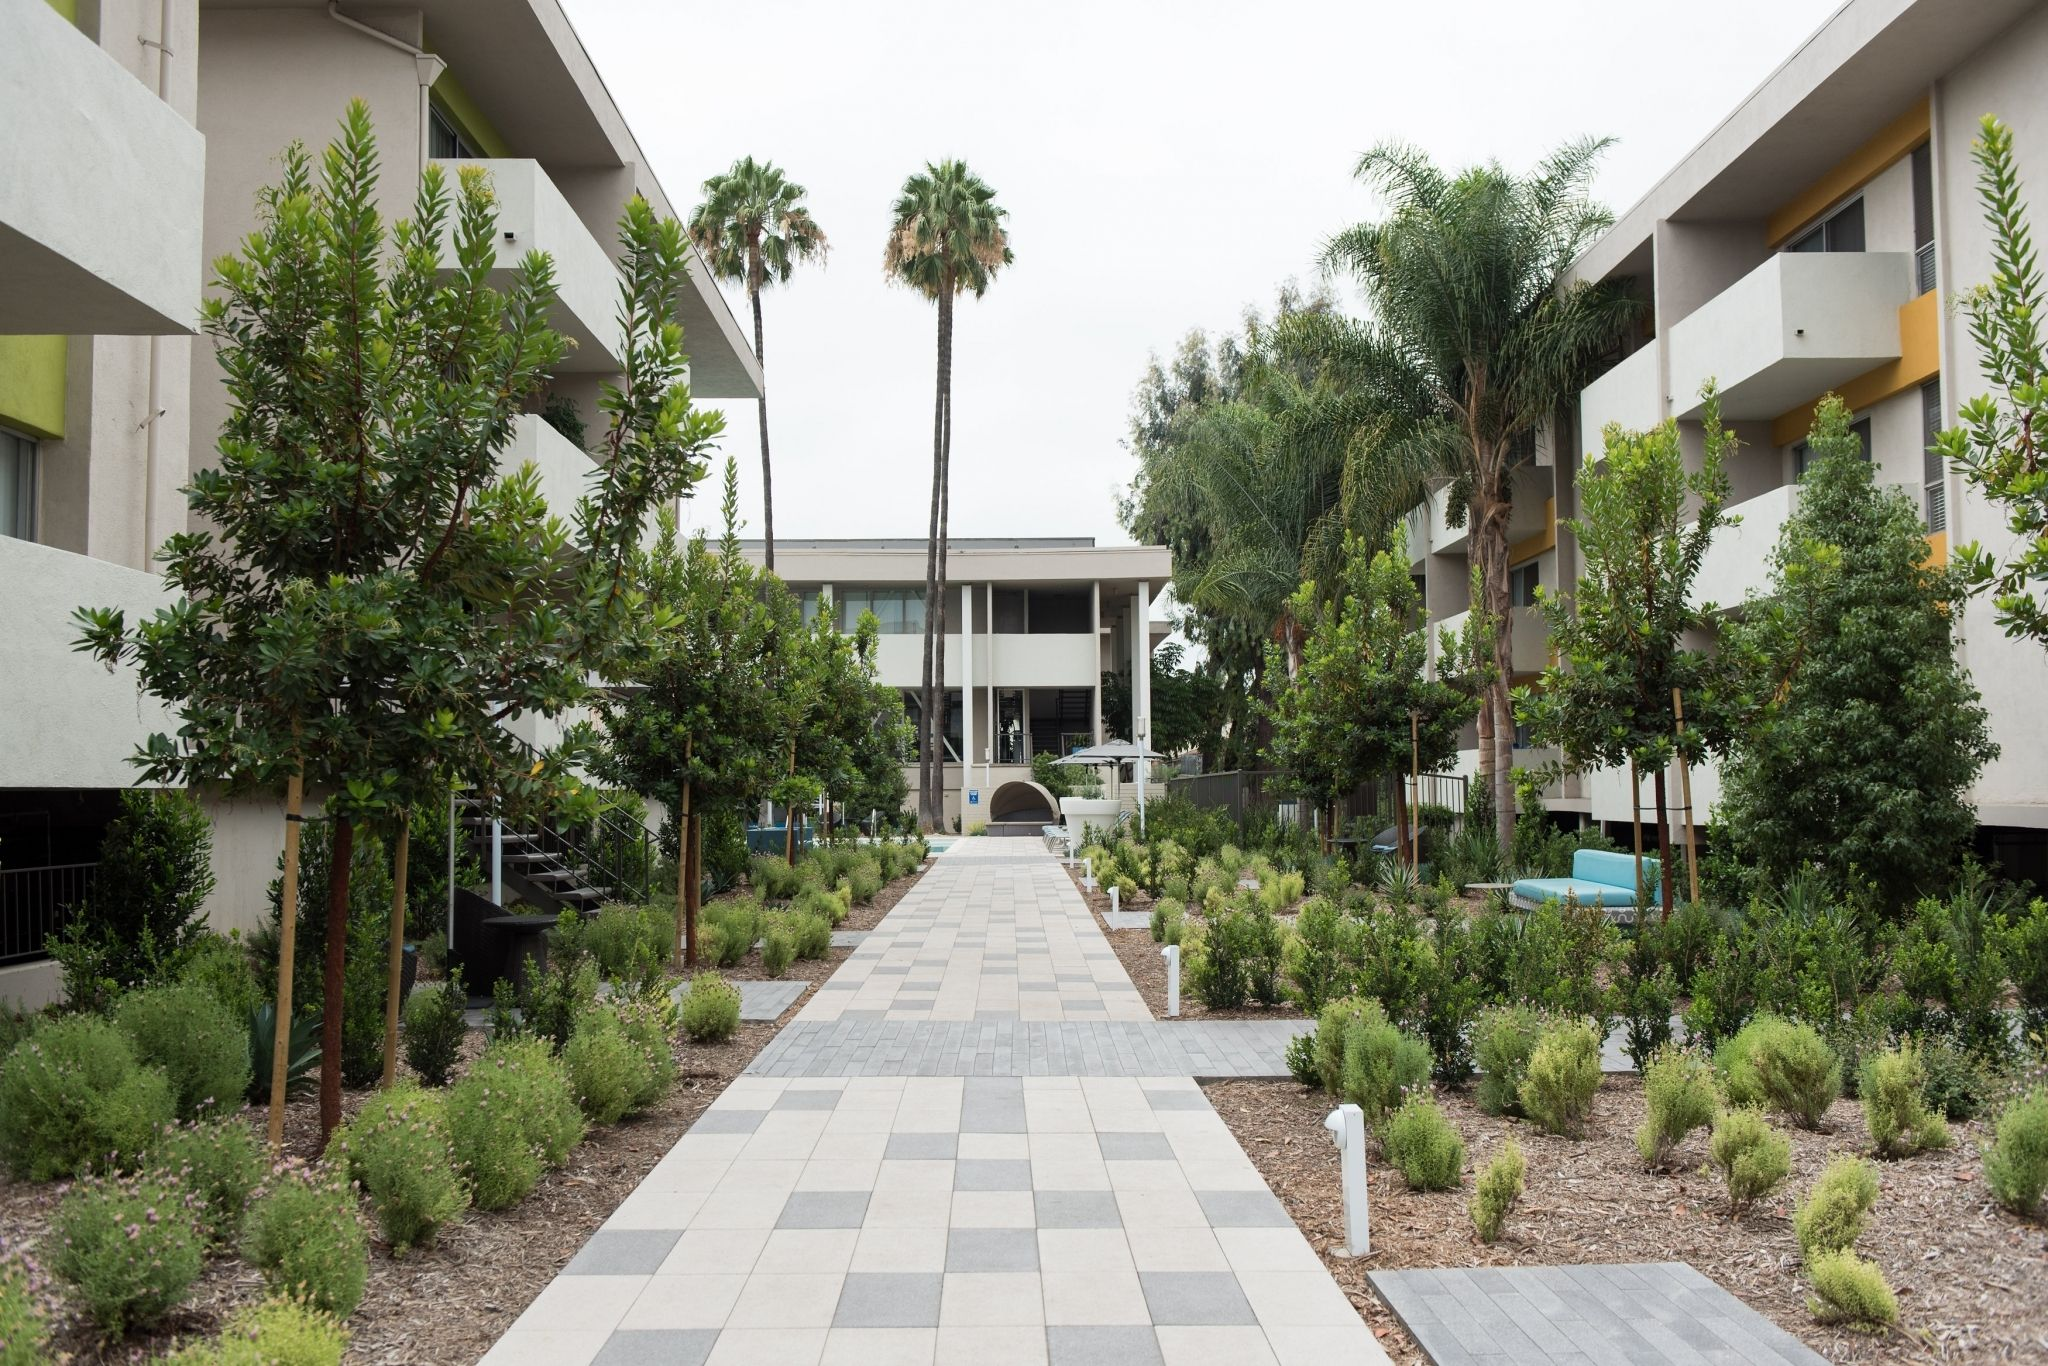 Photos Of Our Apartments In Los Angeles Ca Near Ktown The Chadwick Los Angeles Apartments Koreatown Los Angeles Amazing Apartments